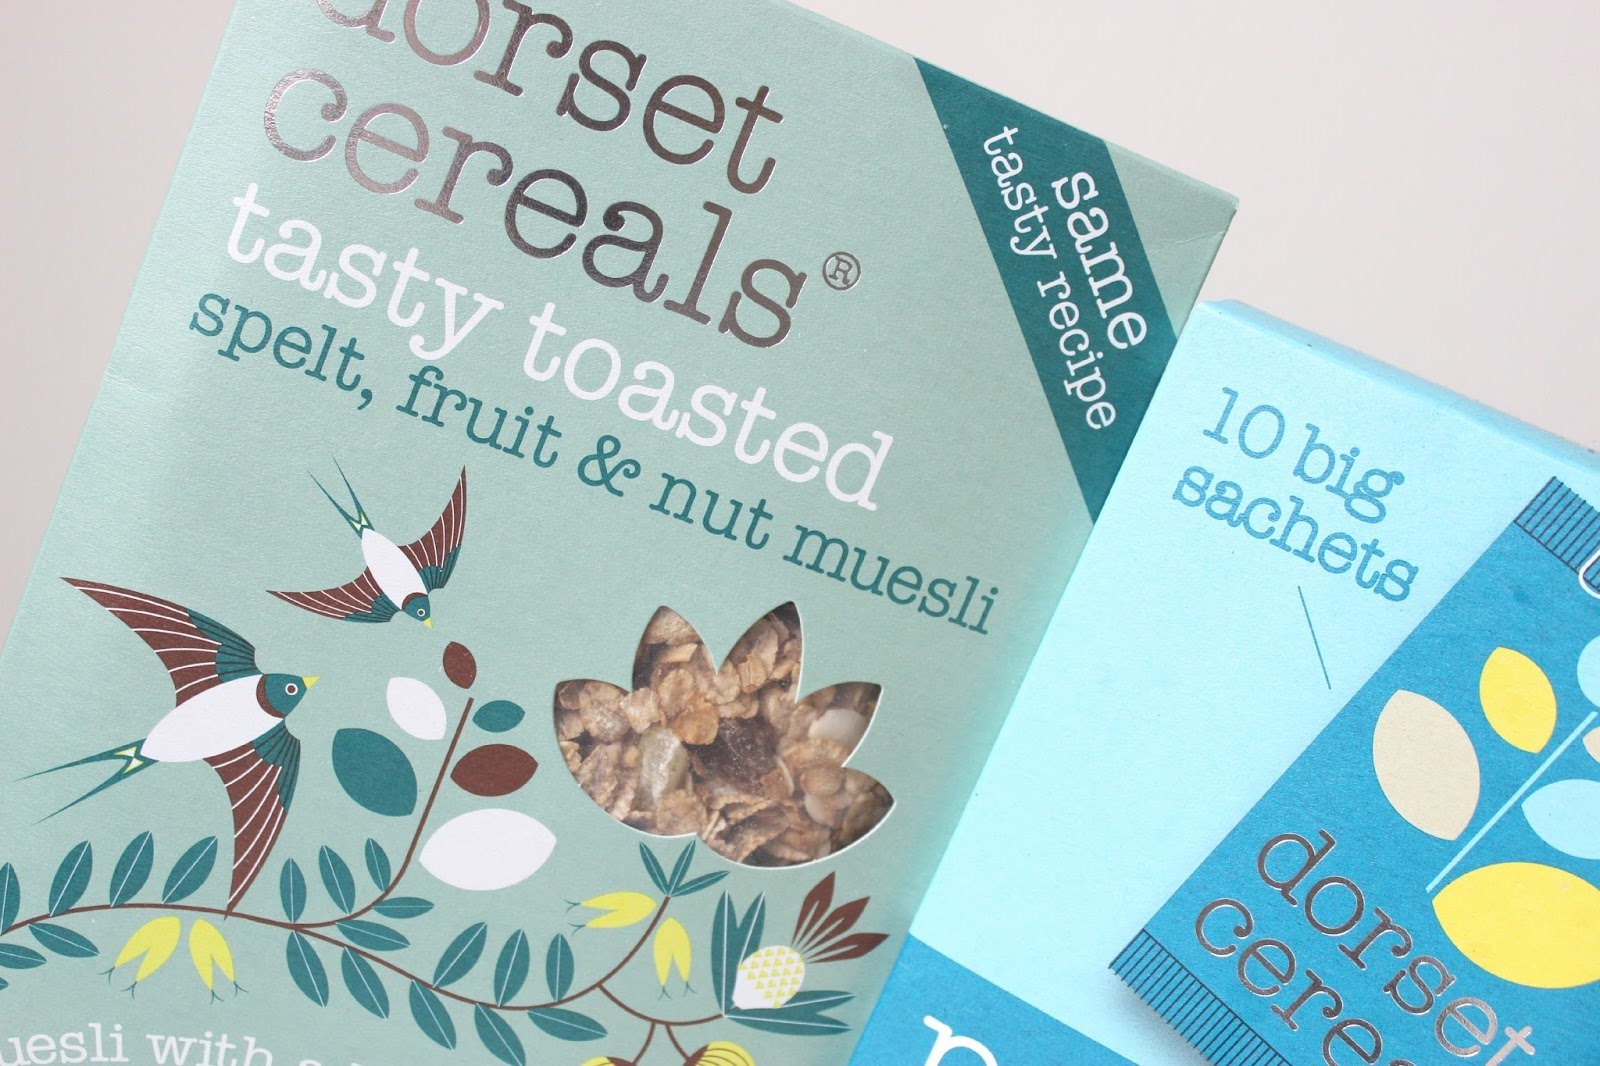 A picture of Dorset Cereals Tasty Toasted Spelt, Fruit & Nut Muesli